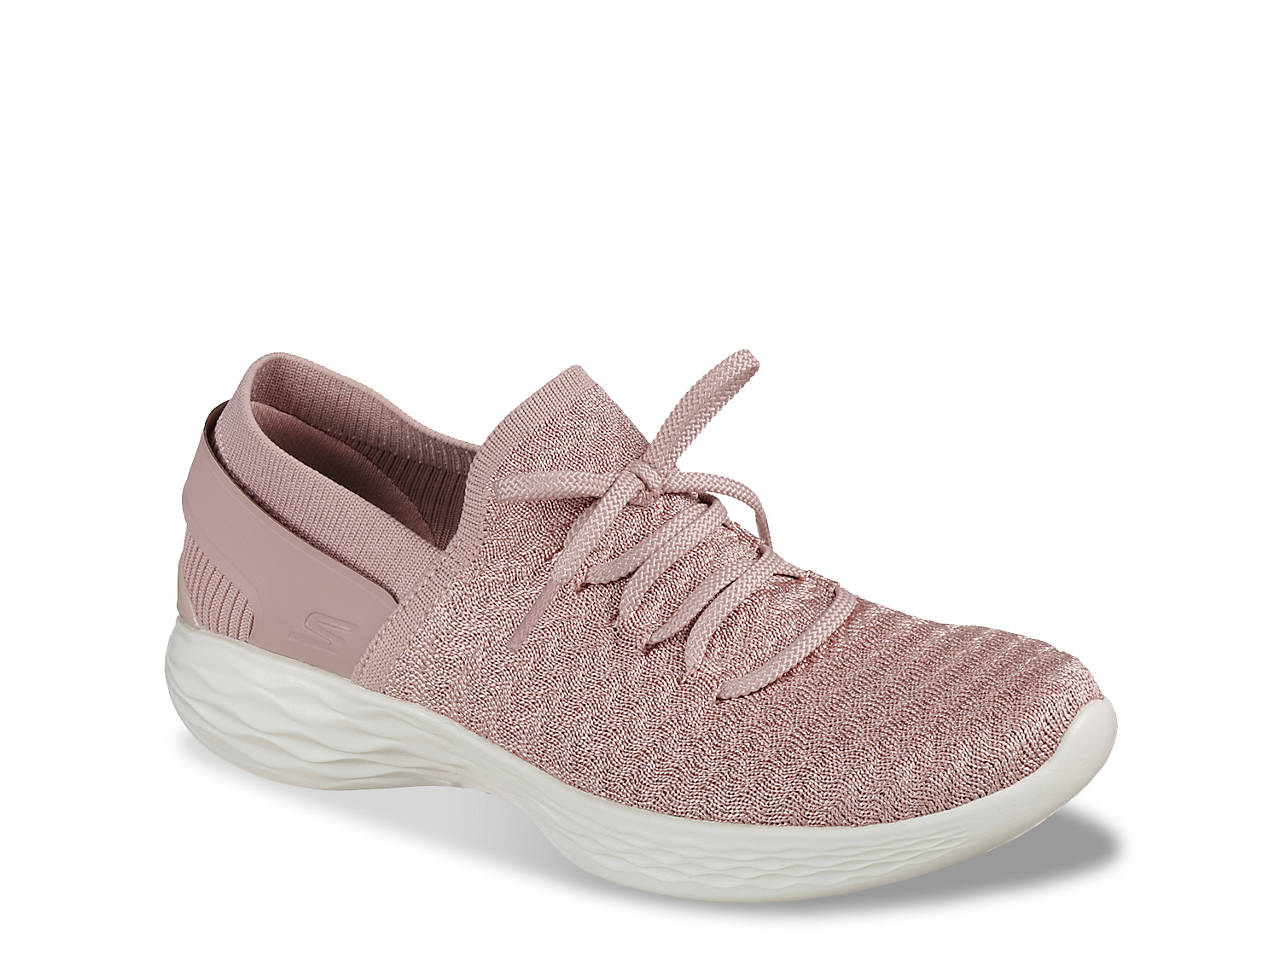 9500acf7a213 You by Skechers Beginning Sneaker - Women s Men s Shoes